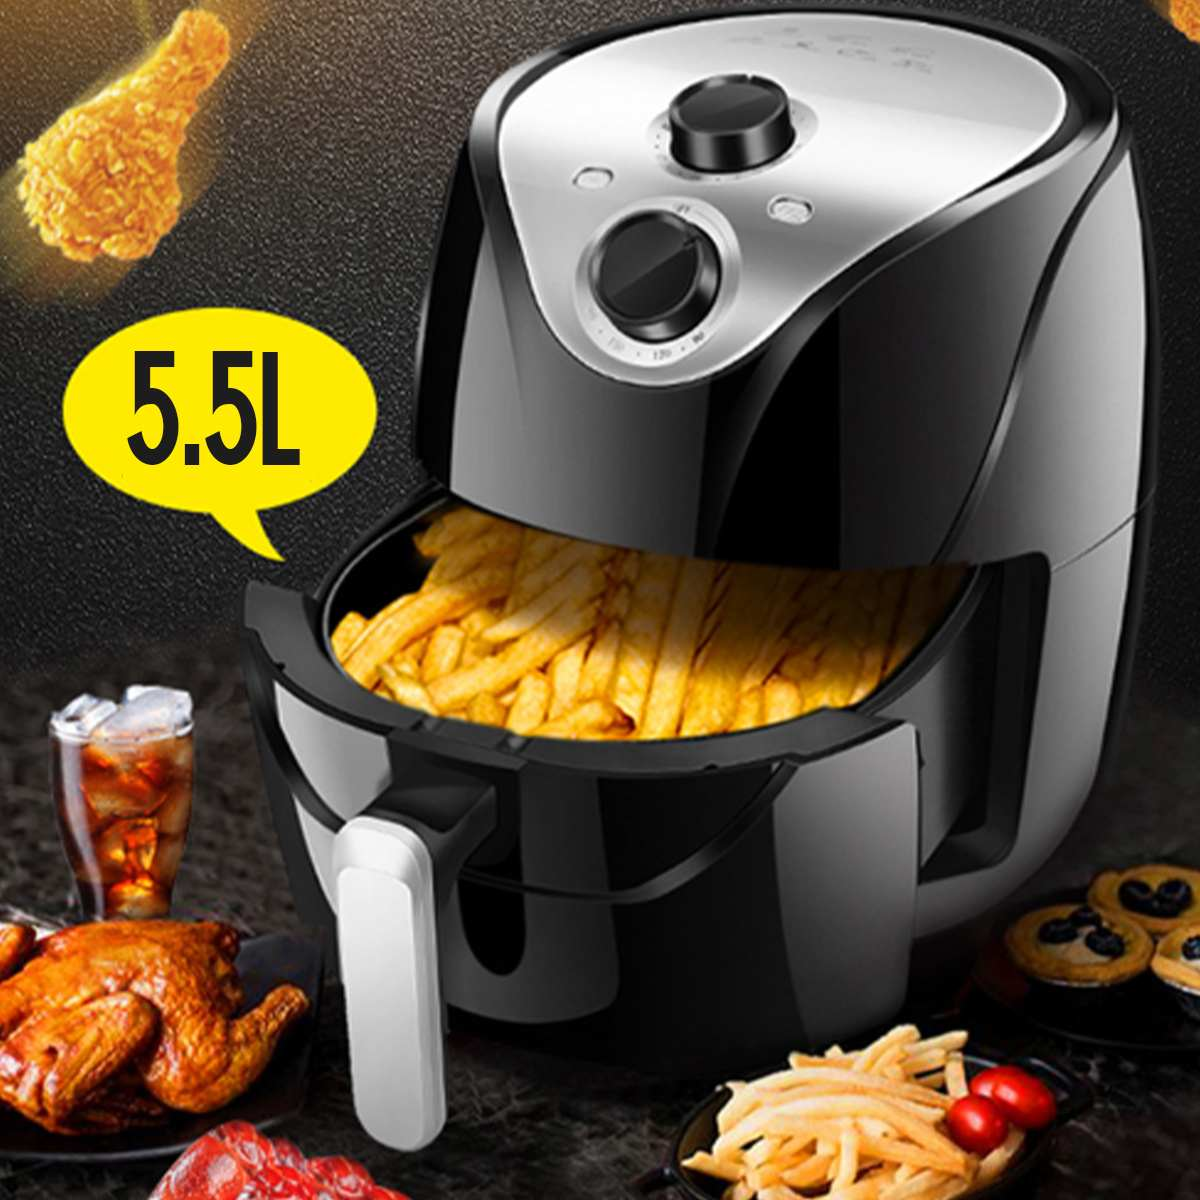 5.5L 1500W Air Fryer Electric Deep Fryer High-speed Hot Air Circulation Multi-function Cooker Oven Low Fat Health Pan AU Plug